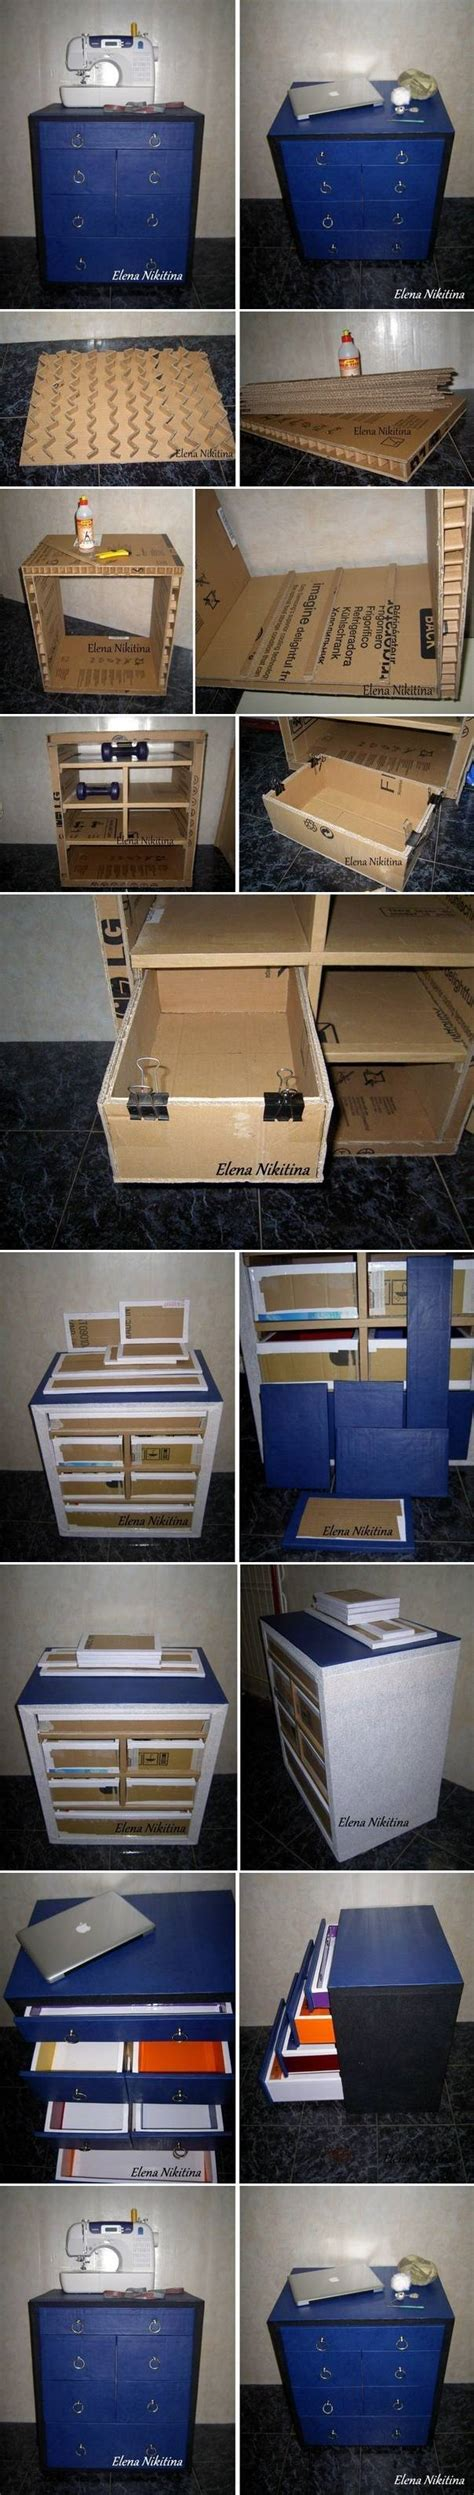 How To Make Cardboard Drawers by How To Make Cardboard Chest With Drawers Storage Units